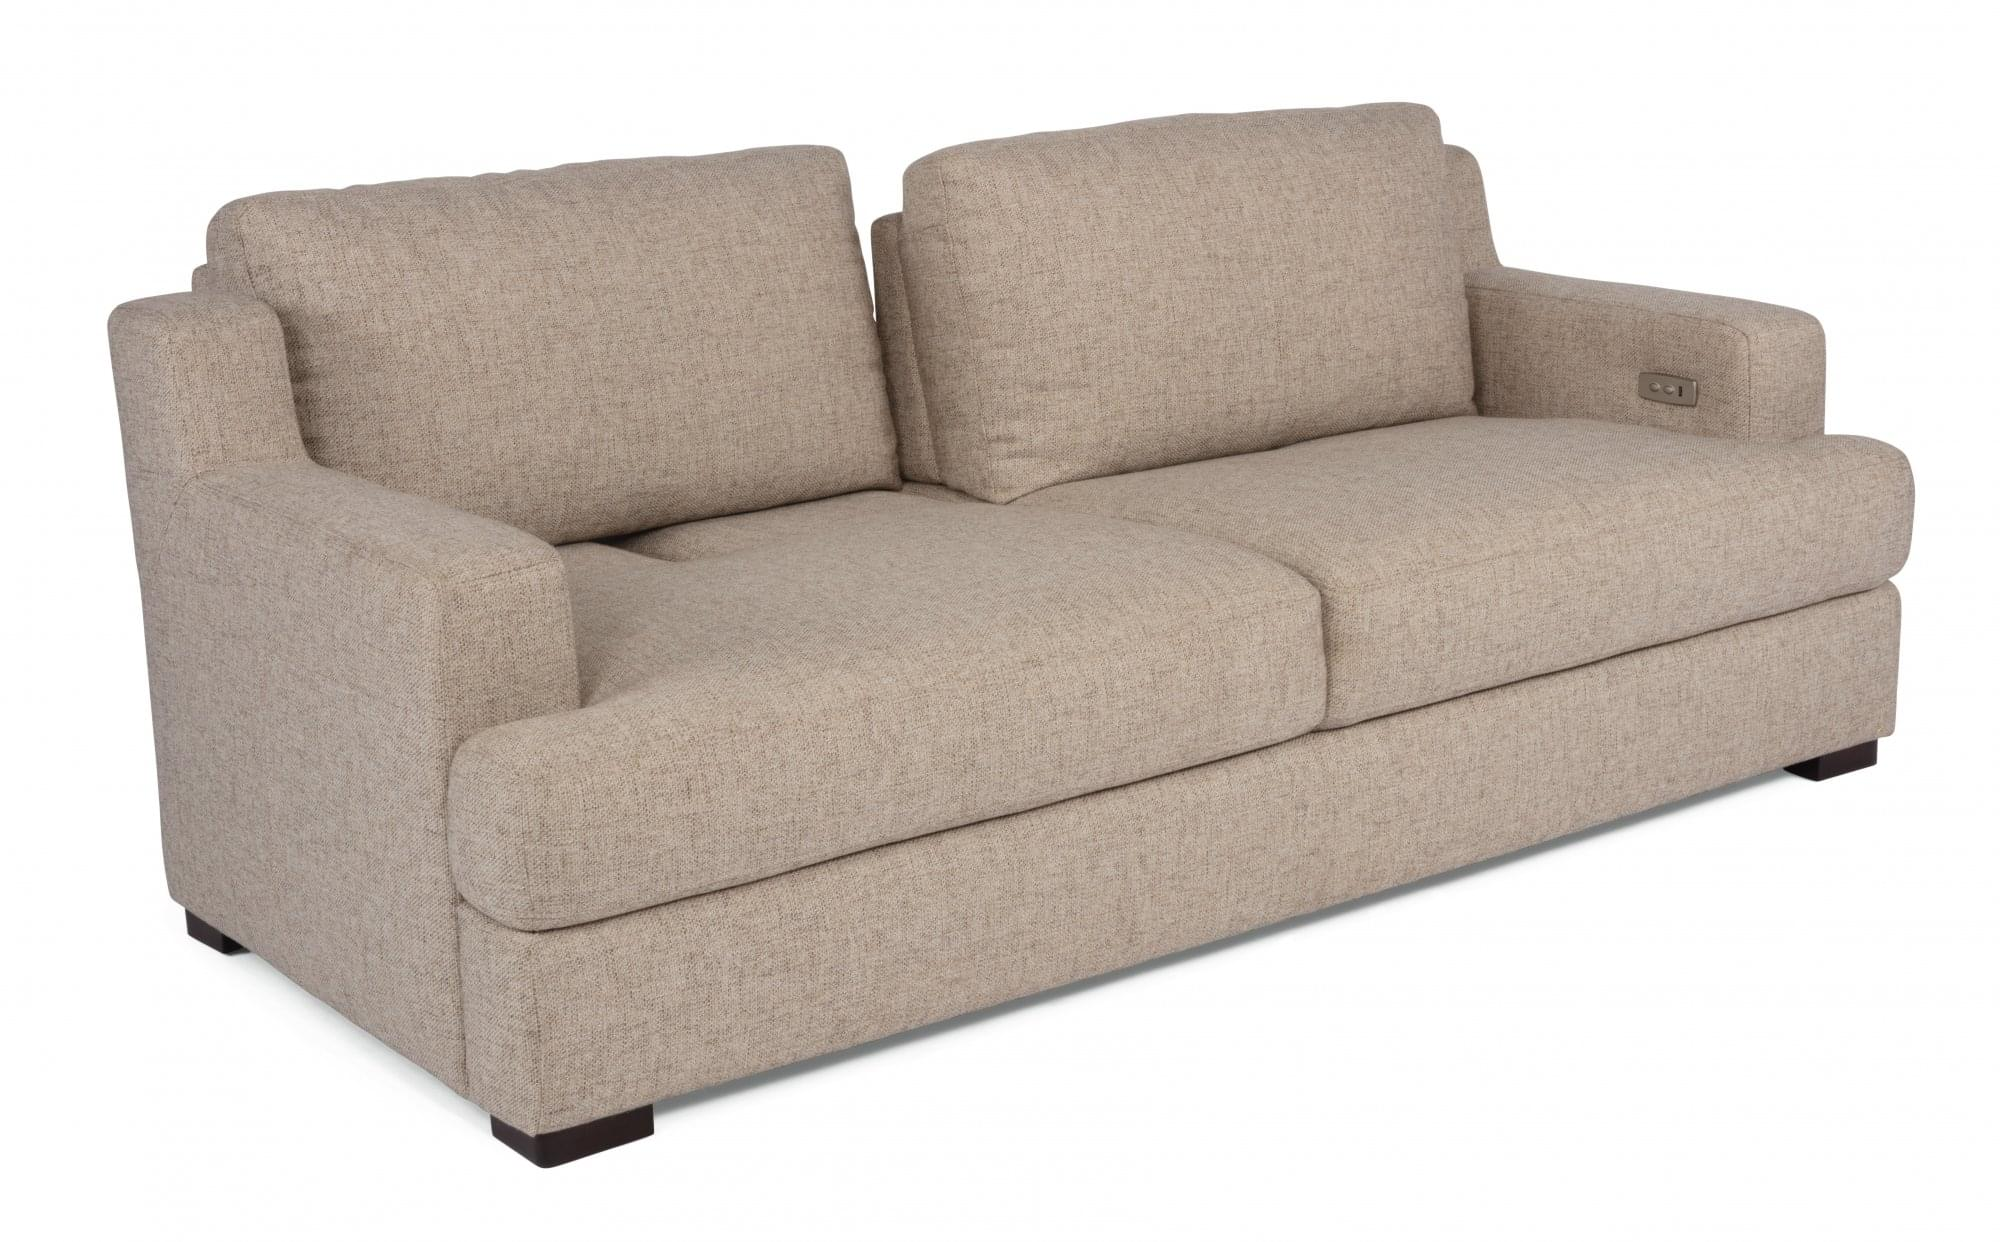 Shop Flexsteel sofas. We offer a wide range of sofas for your living room in Monterey county! Stop by Mums Place Furniture Store in Carmel, CA.